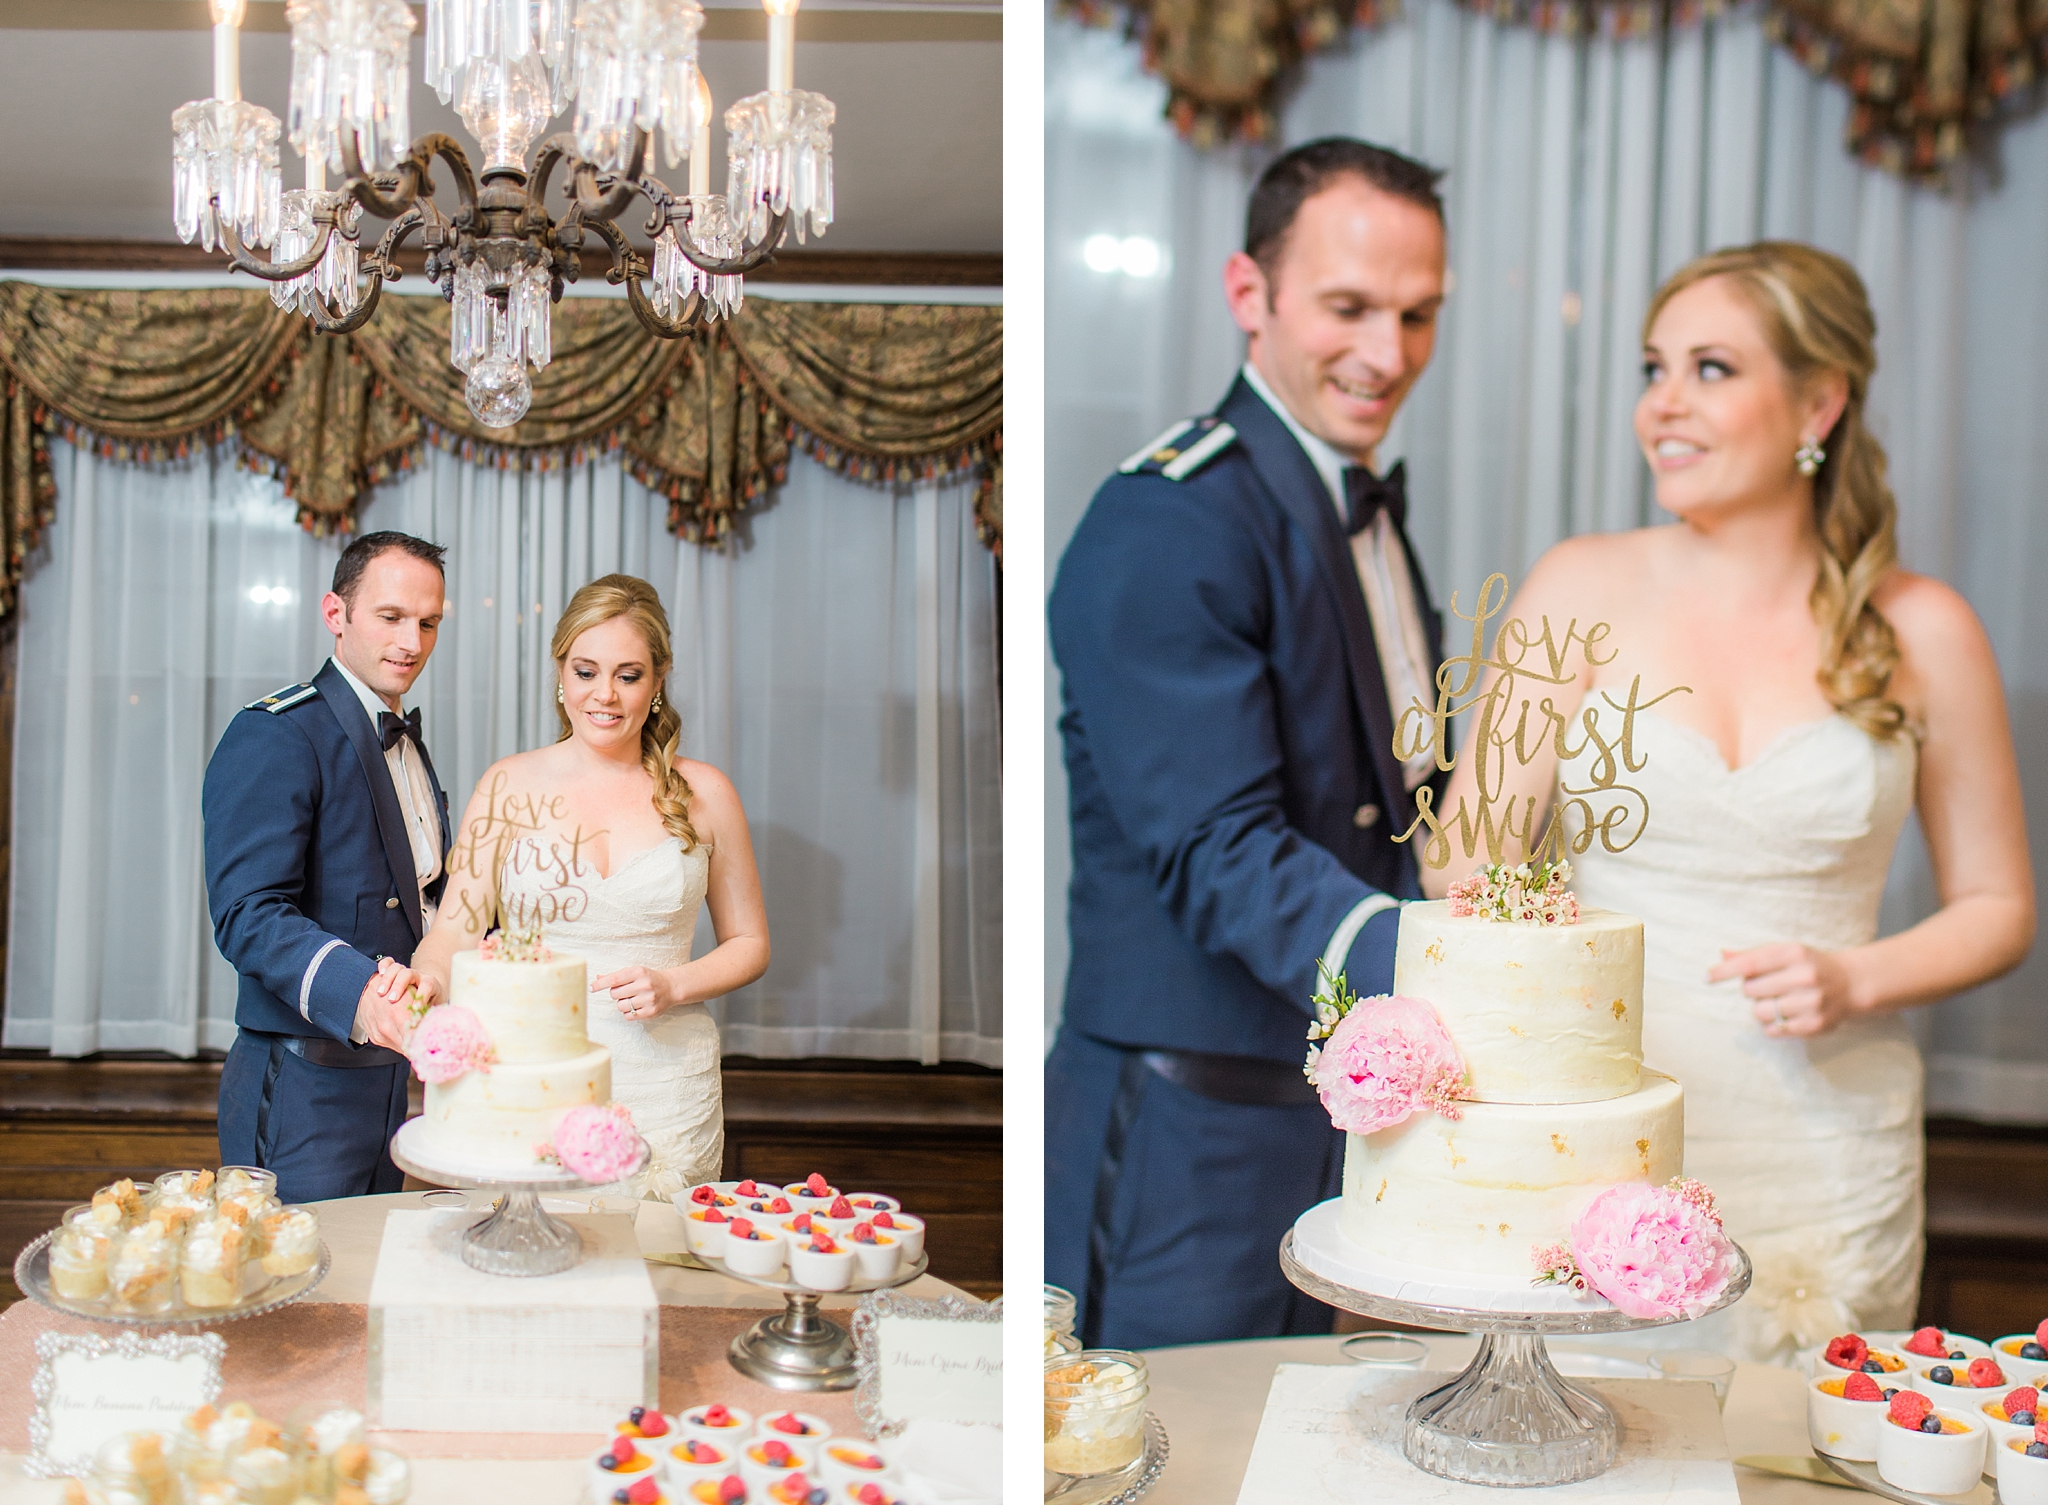 cjs-square-nashville-cake-cutting.jpg